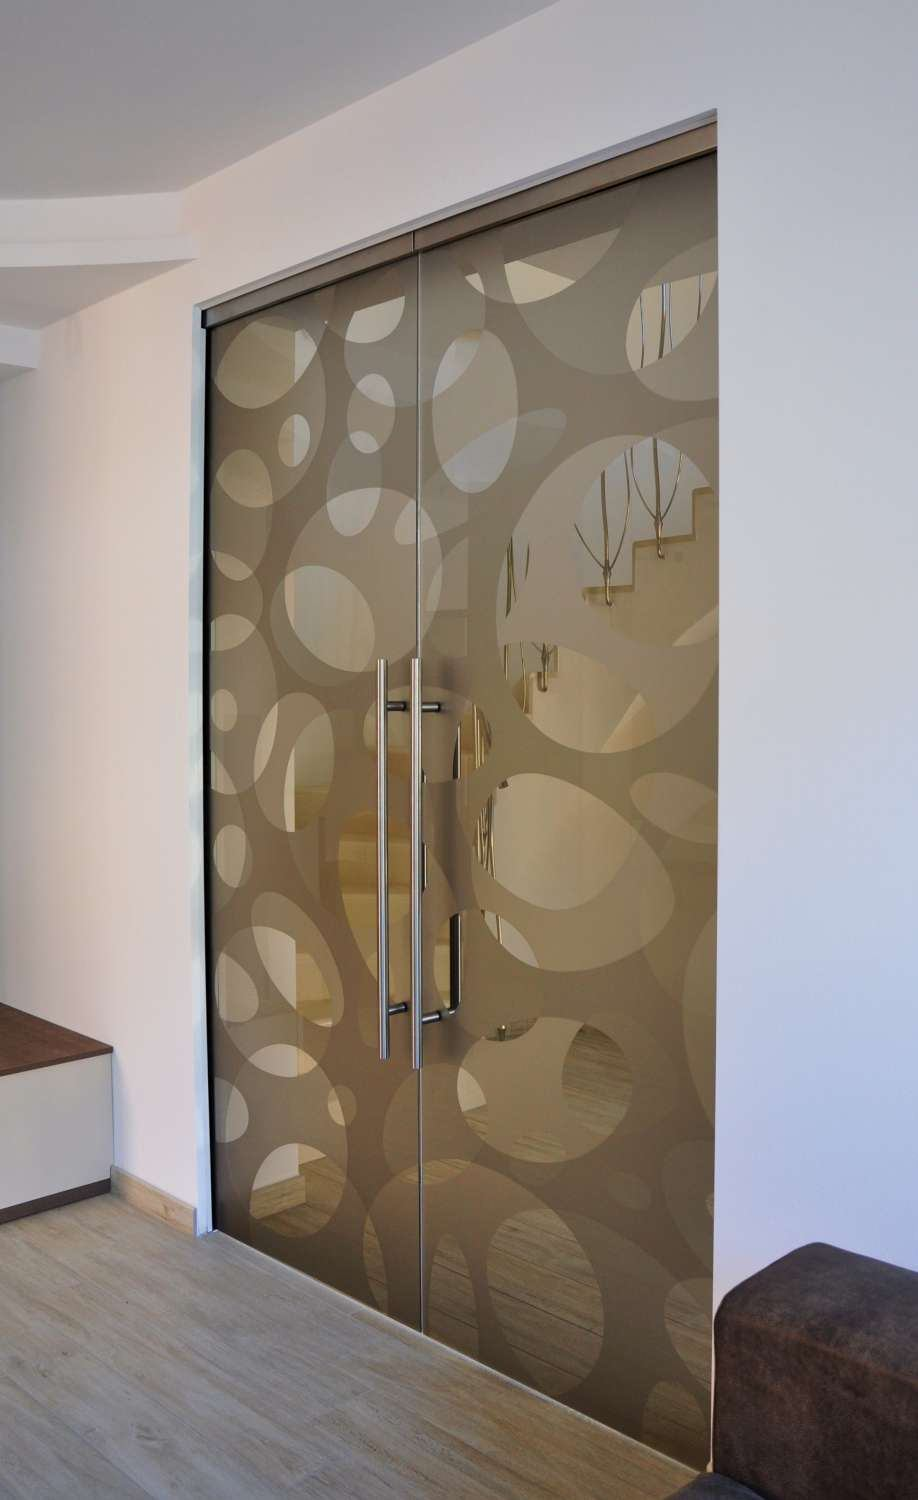 Mazzoli Glass Doors | ECLISSE SYNTESIS GLASS